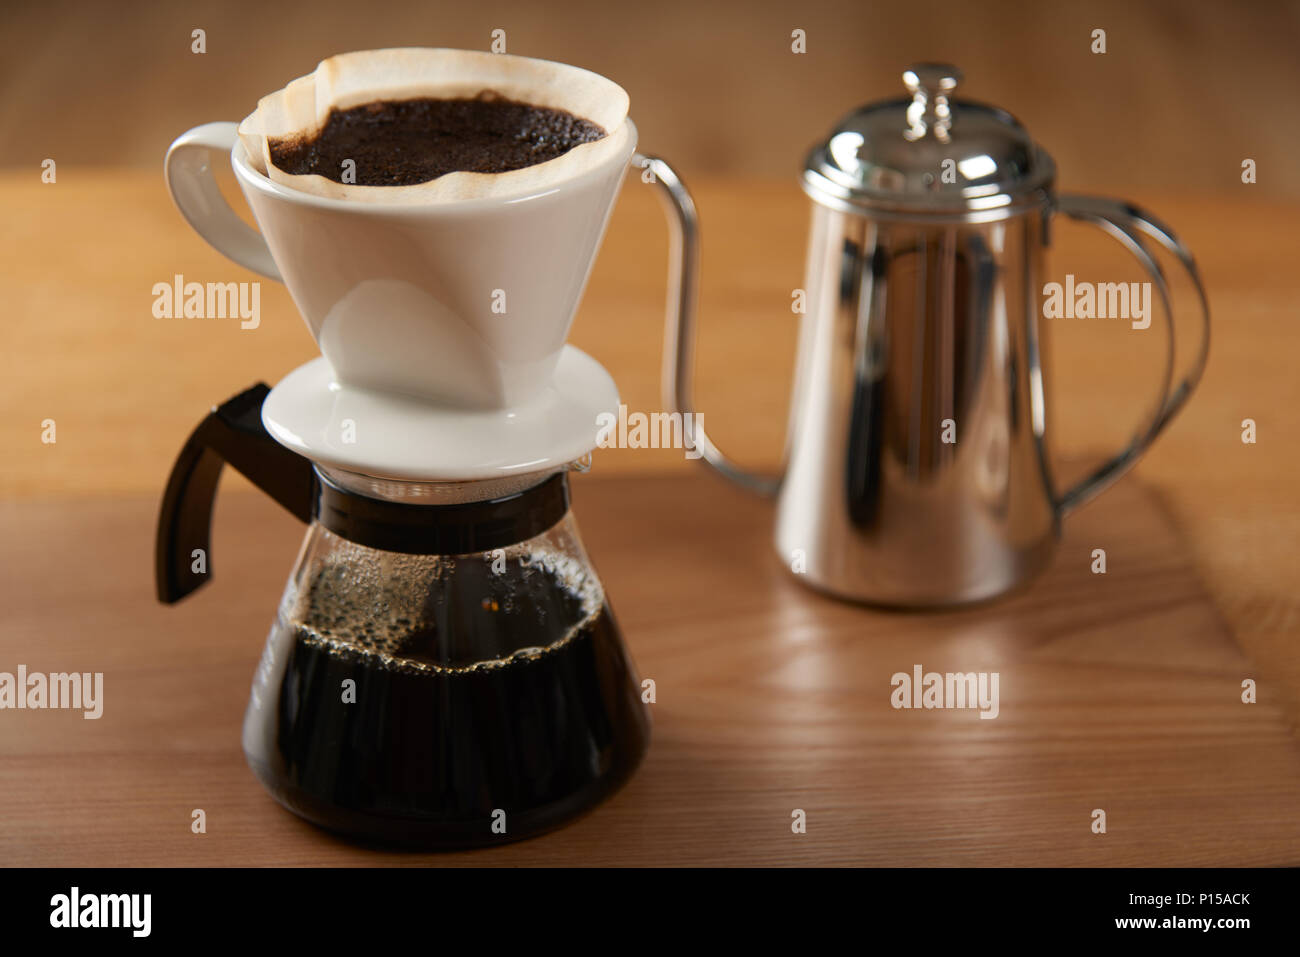 ceramic hand drip coffee brewer (dripper) and drip ground coffee on a glass server with stainless drip pot - Stock Image